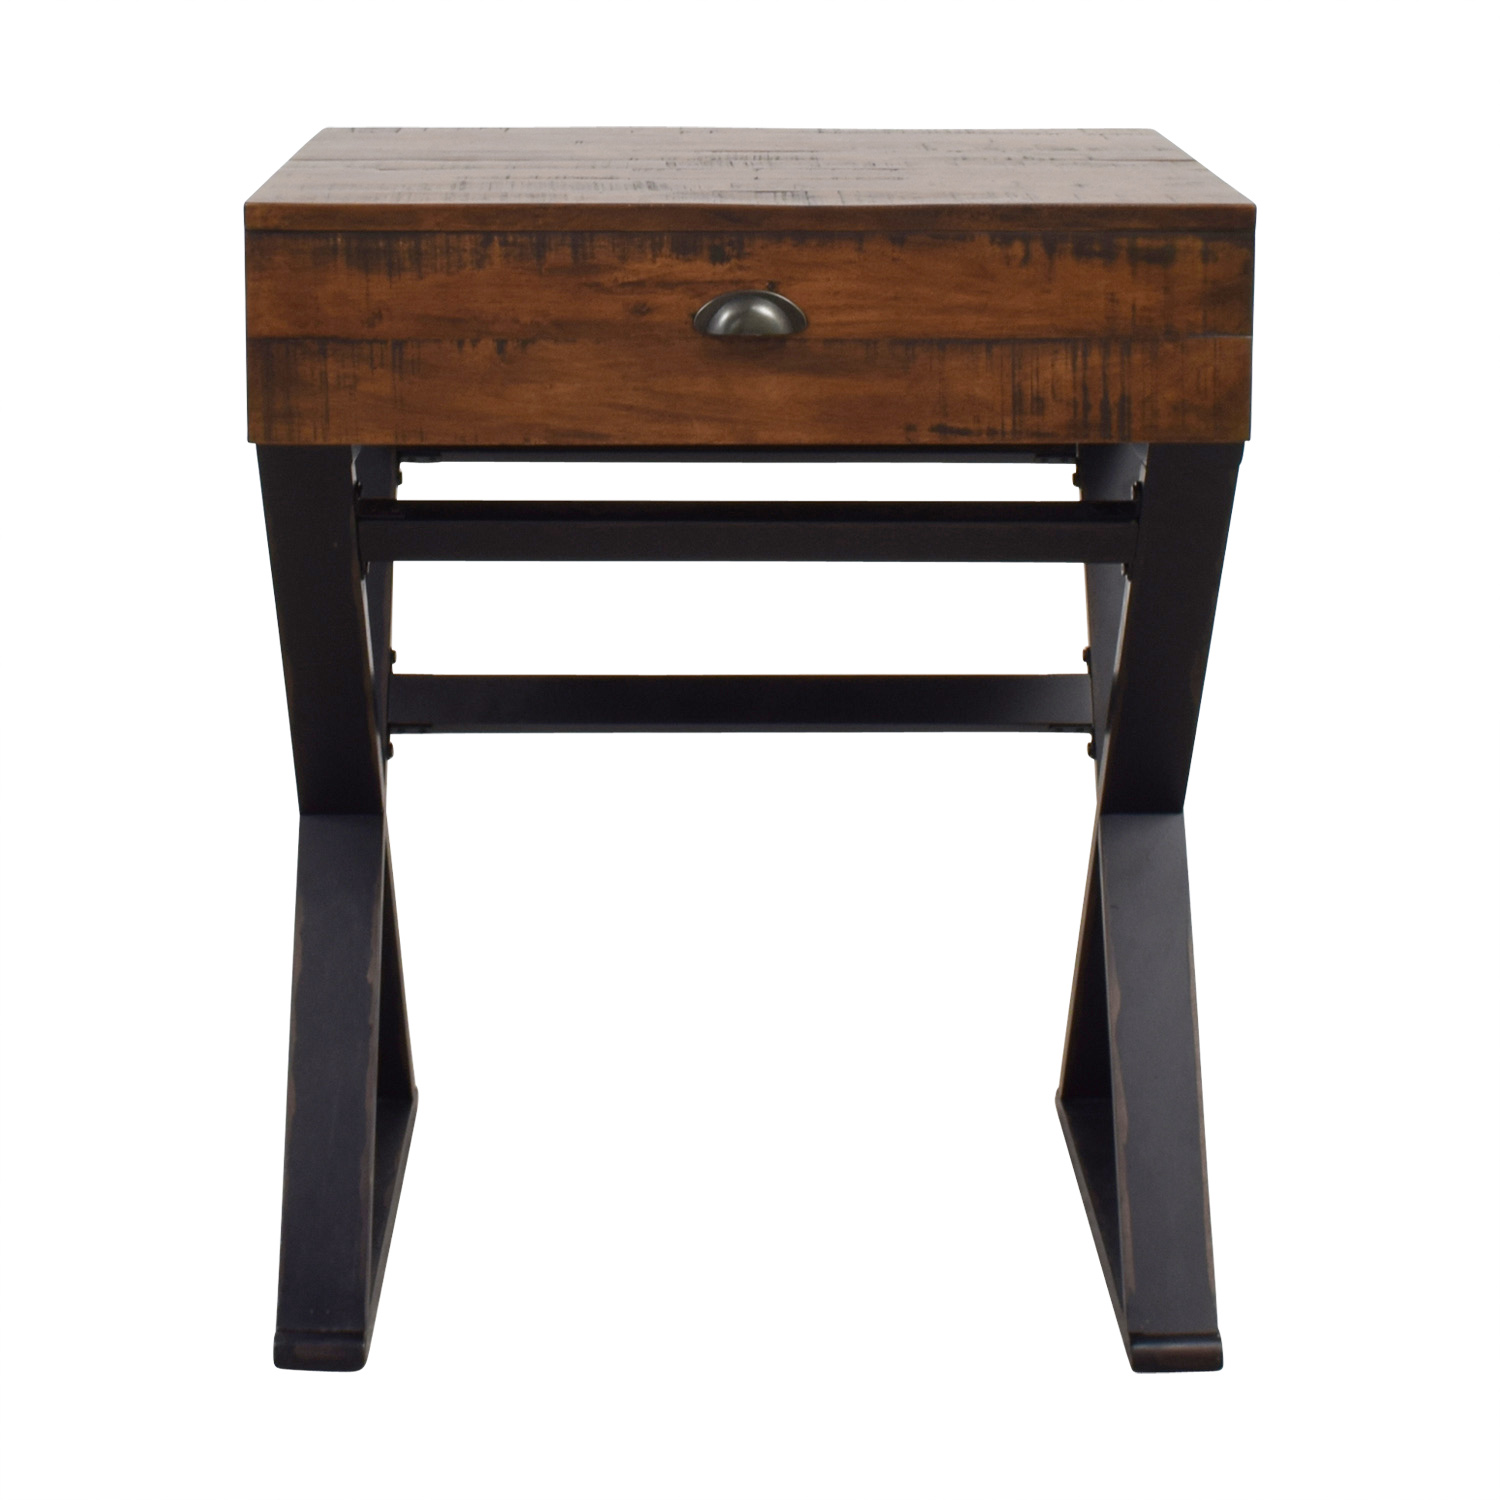 shop home office. Wood Writing Desk Nyc. / Home Office Desks Shop F